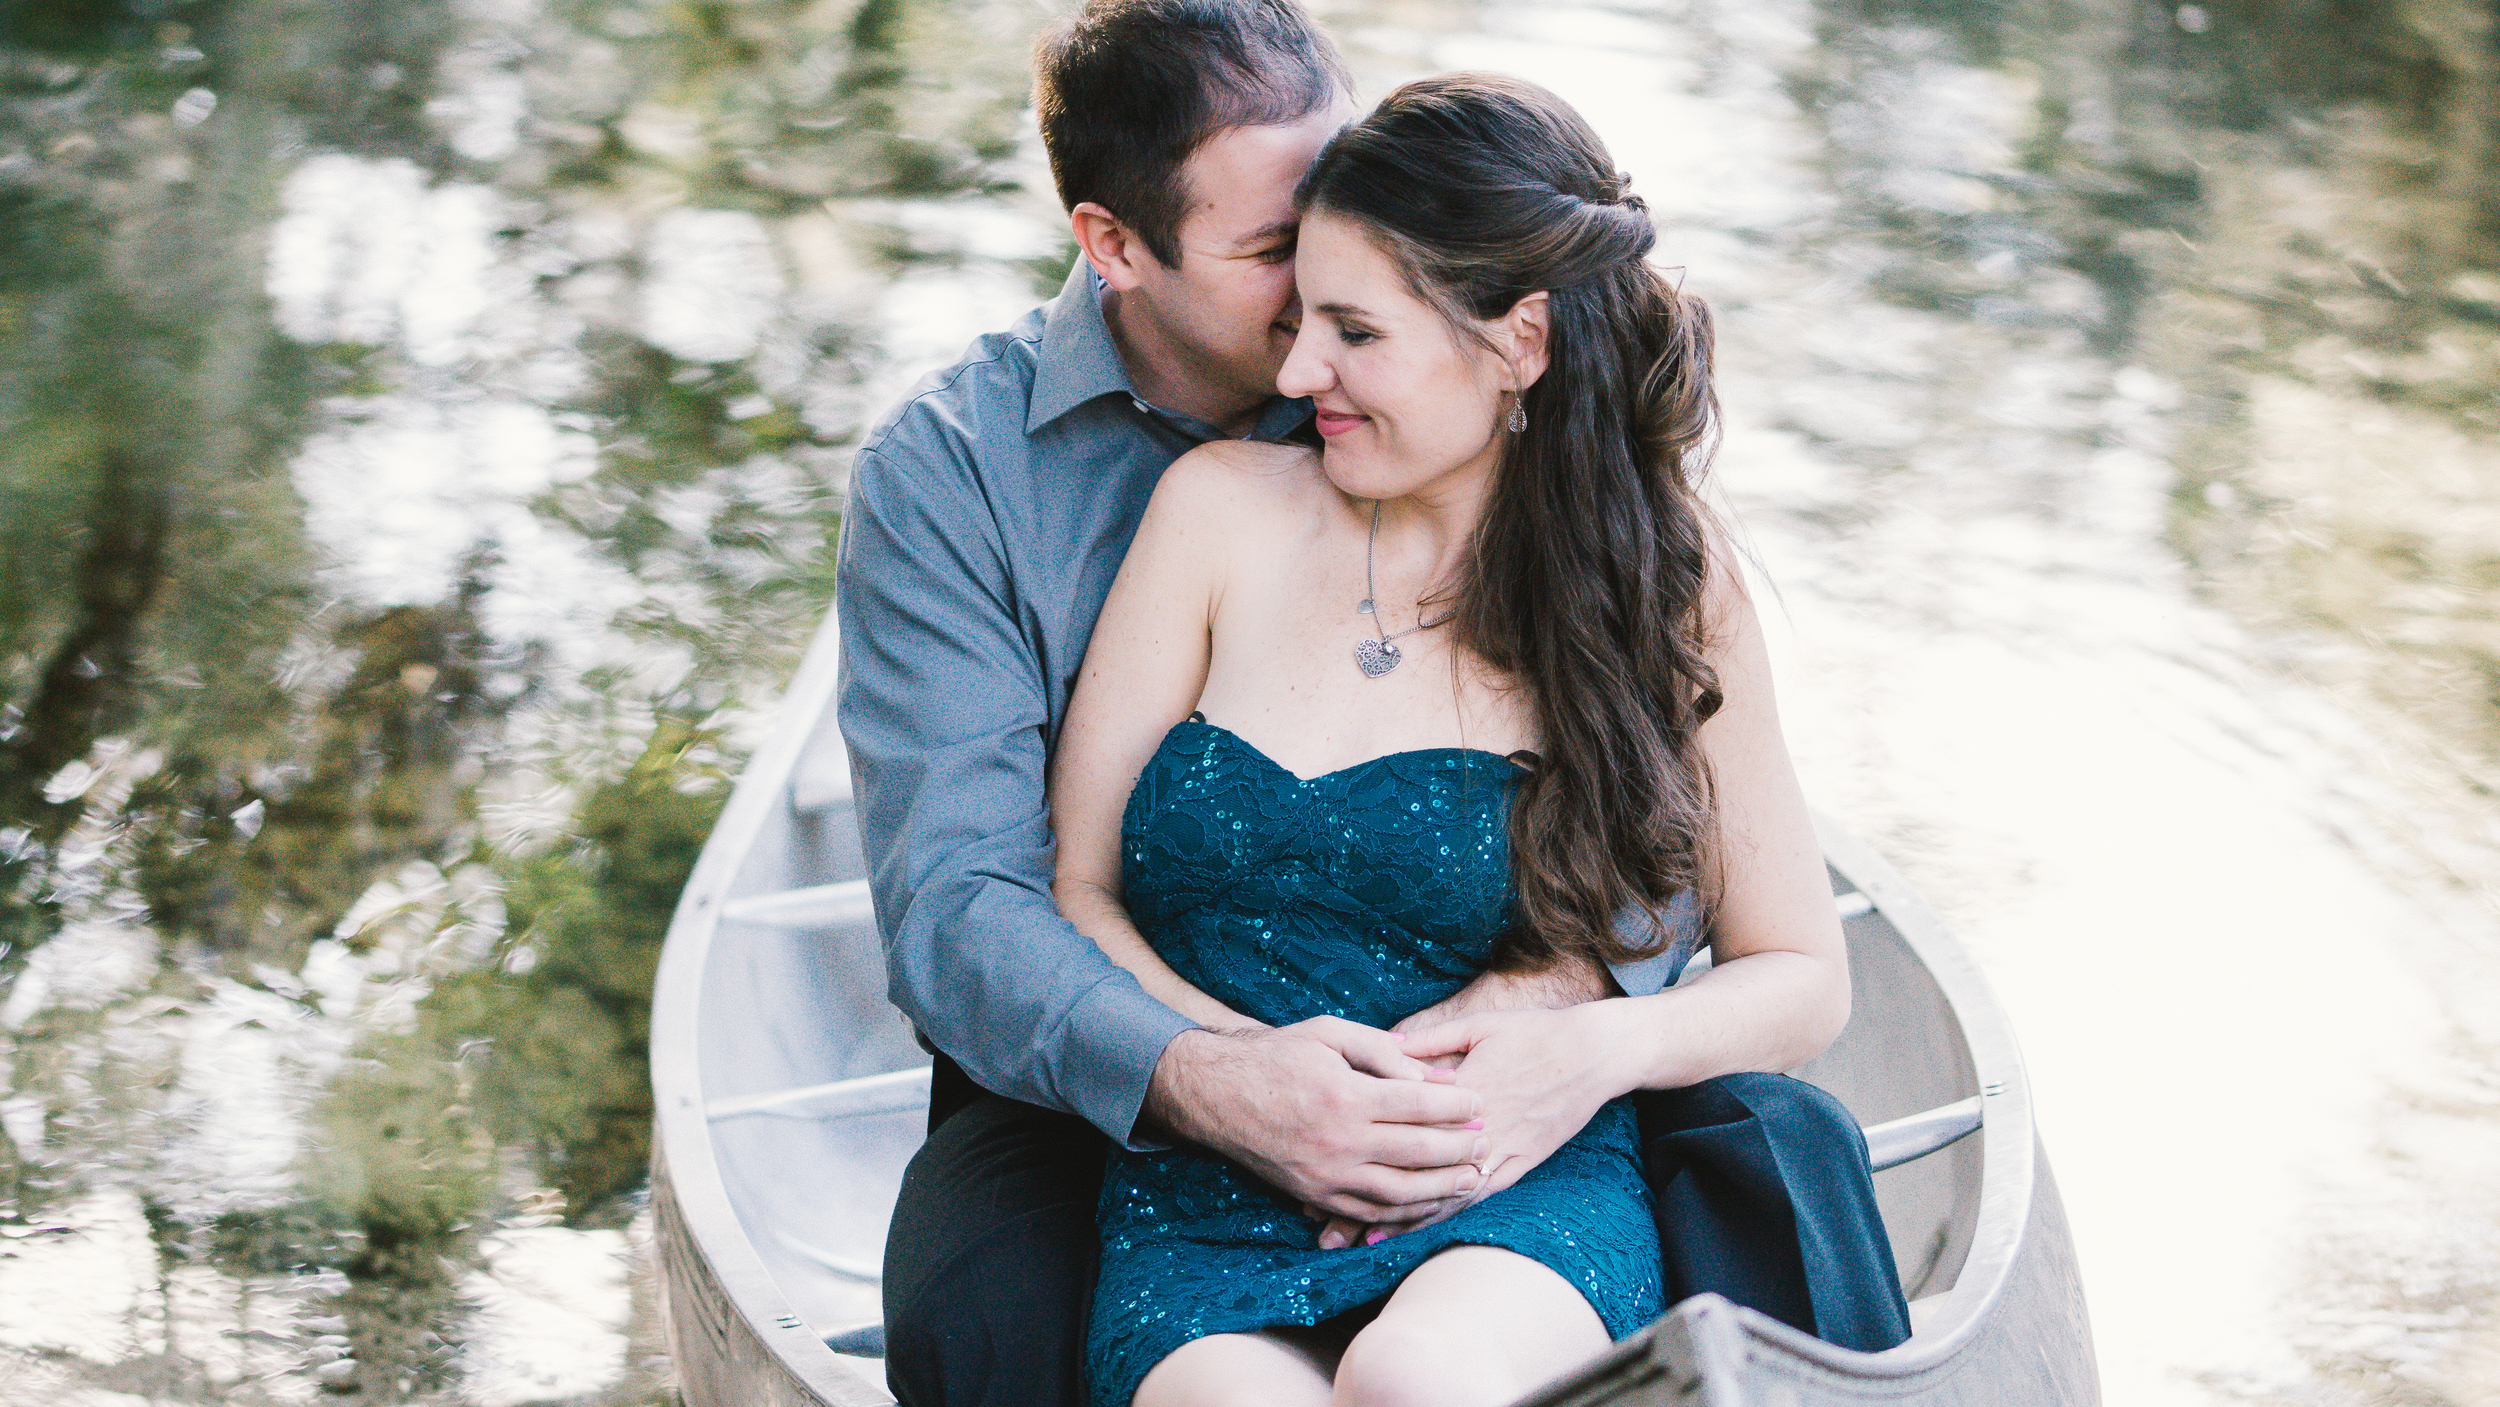 Tampa romantic canoe engagement session by Mir*Salgado Photography